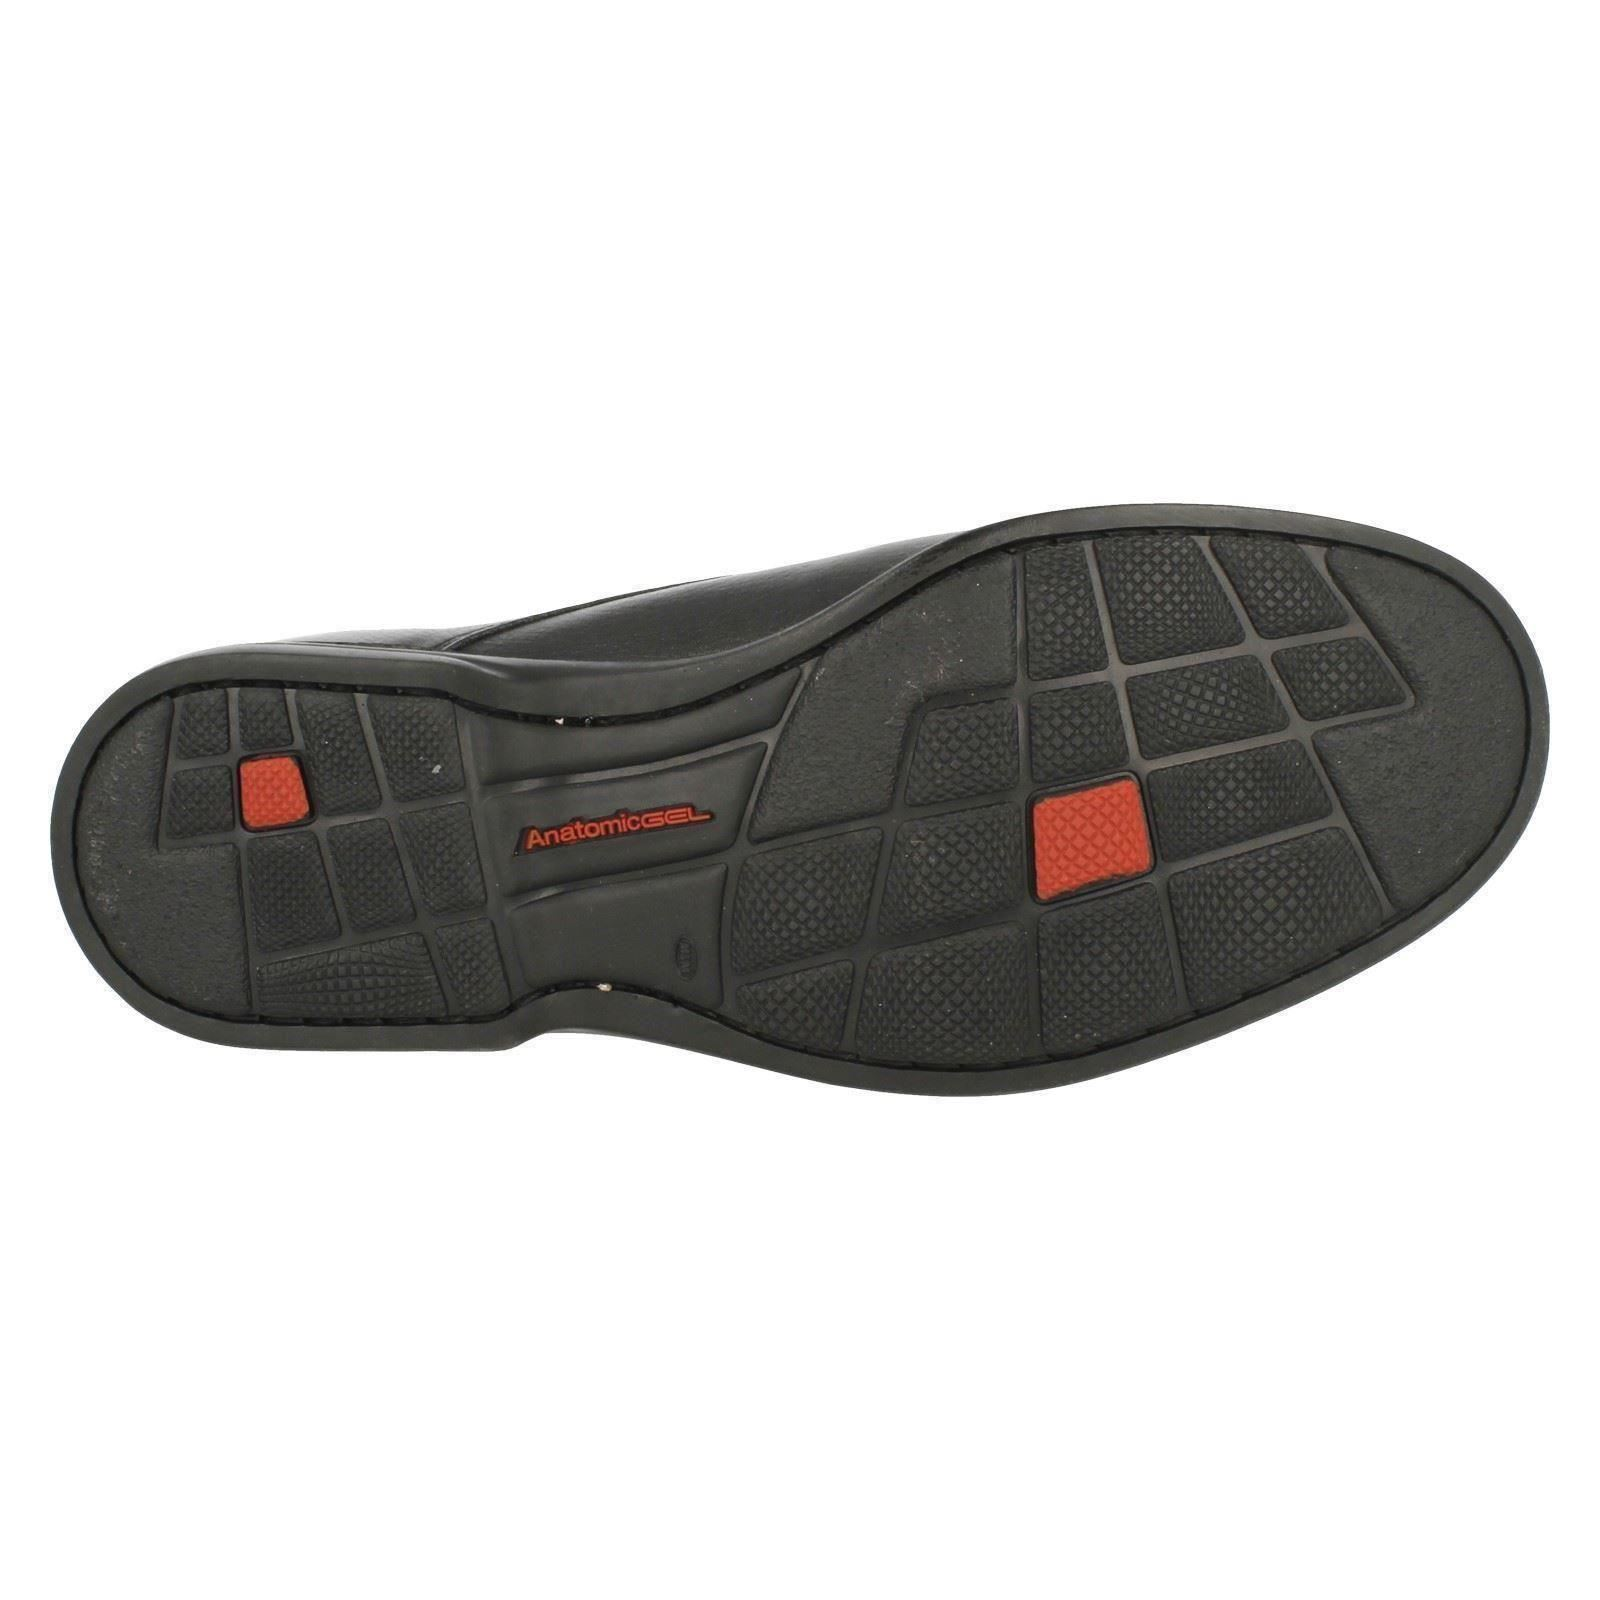 Homme anatomique anatomique Homme & co chaussures le style-ANAPOLIS 6ae4f4